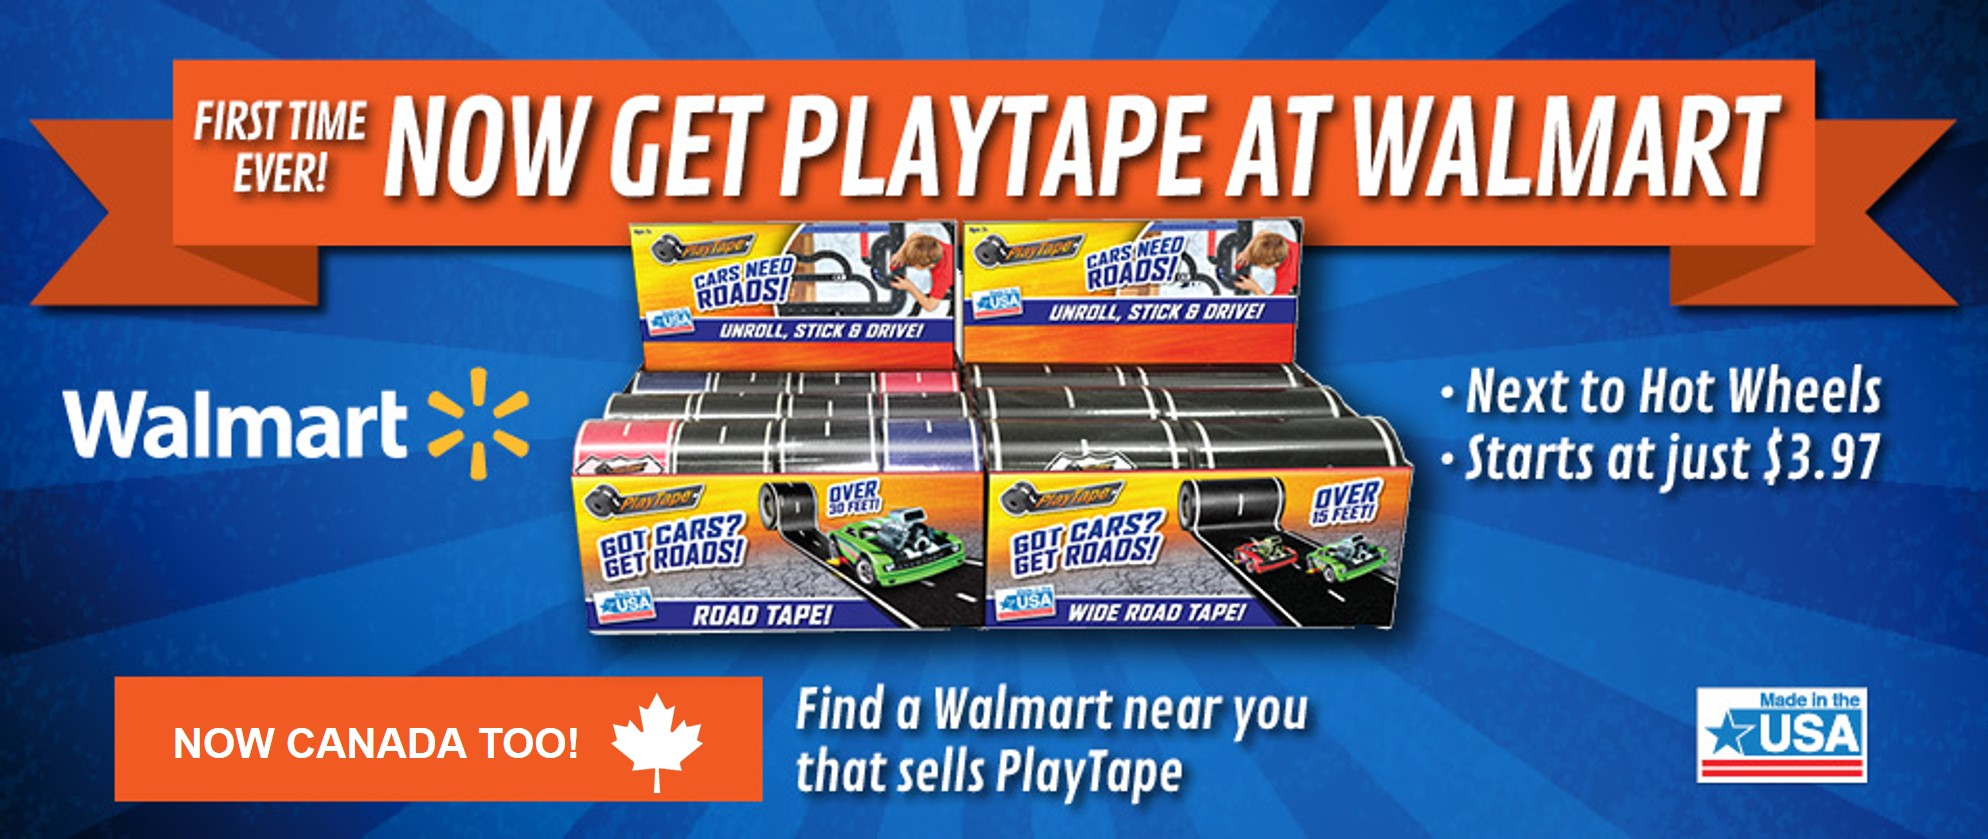 Now get PlayTape at Walmart